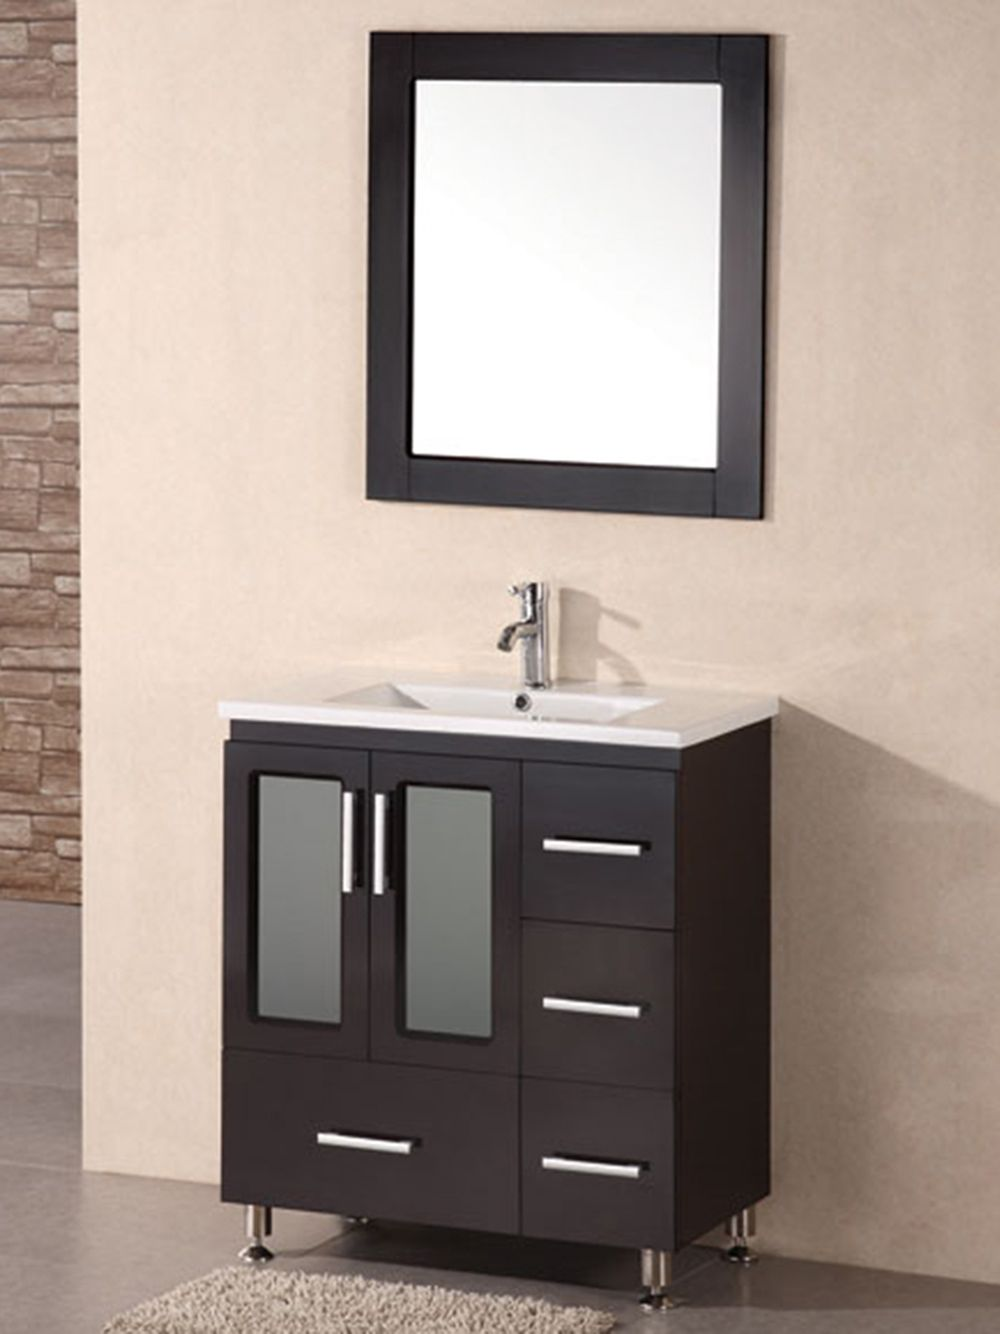 Applying narrow bathroom vanity ideas with premium service - Narrow bathroom sinks and vanities ...